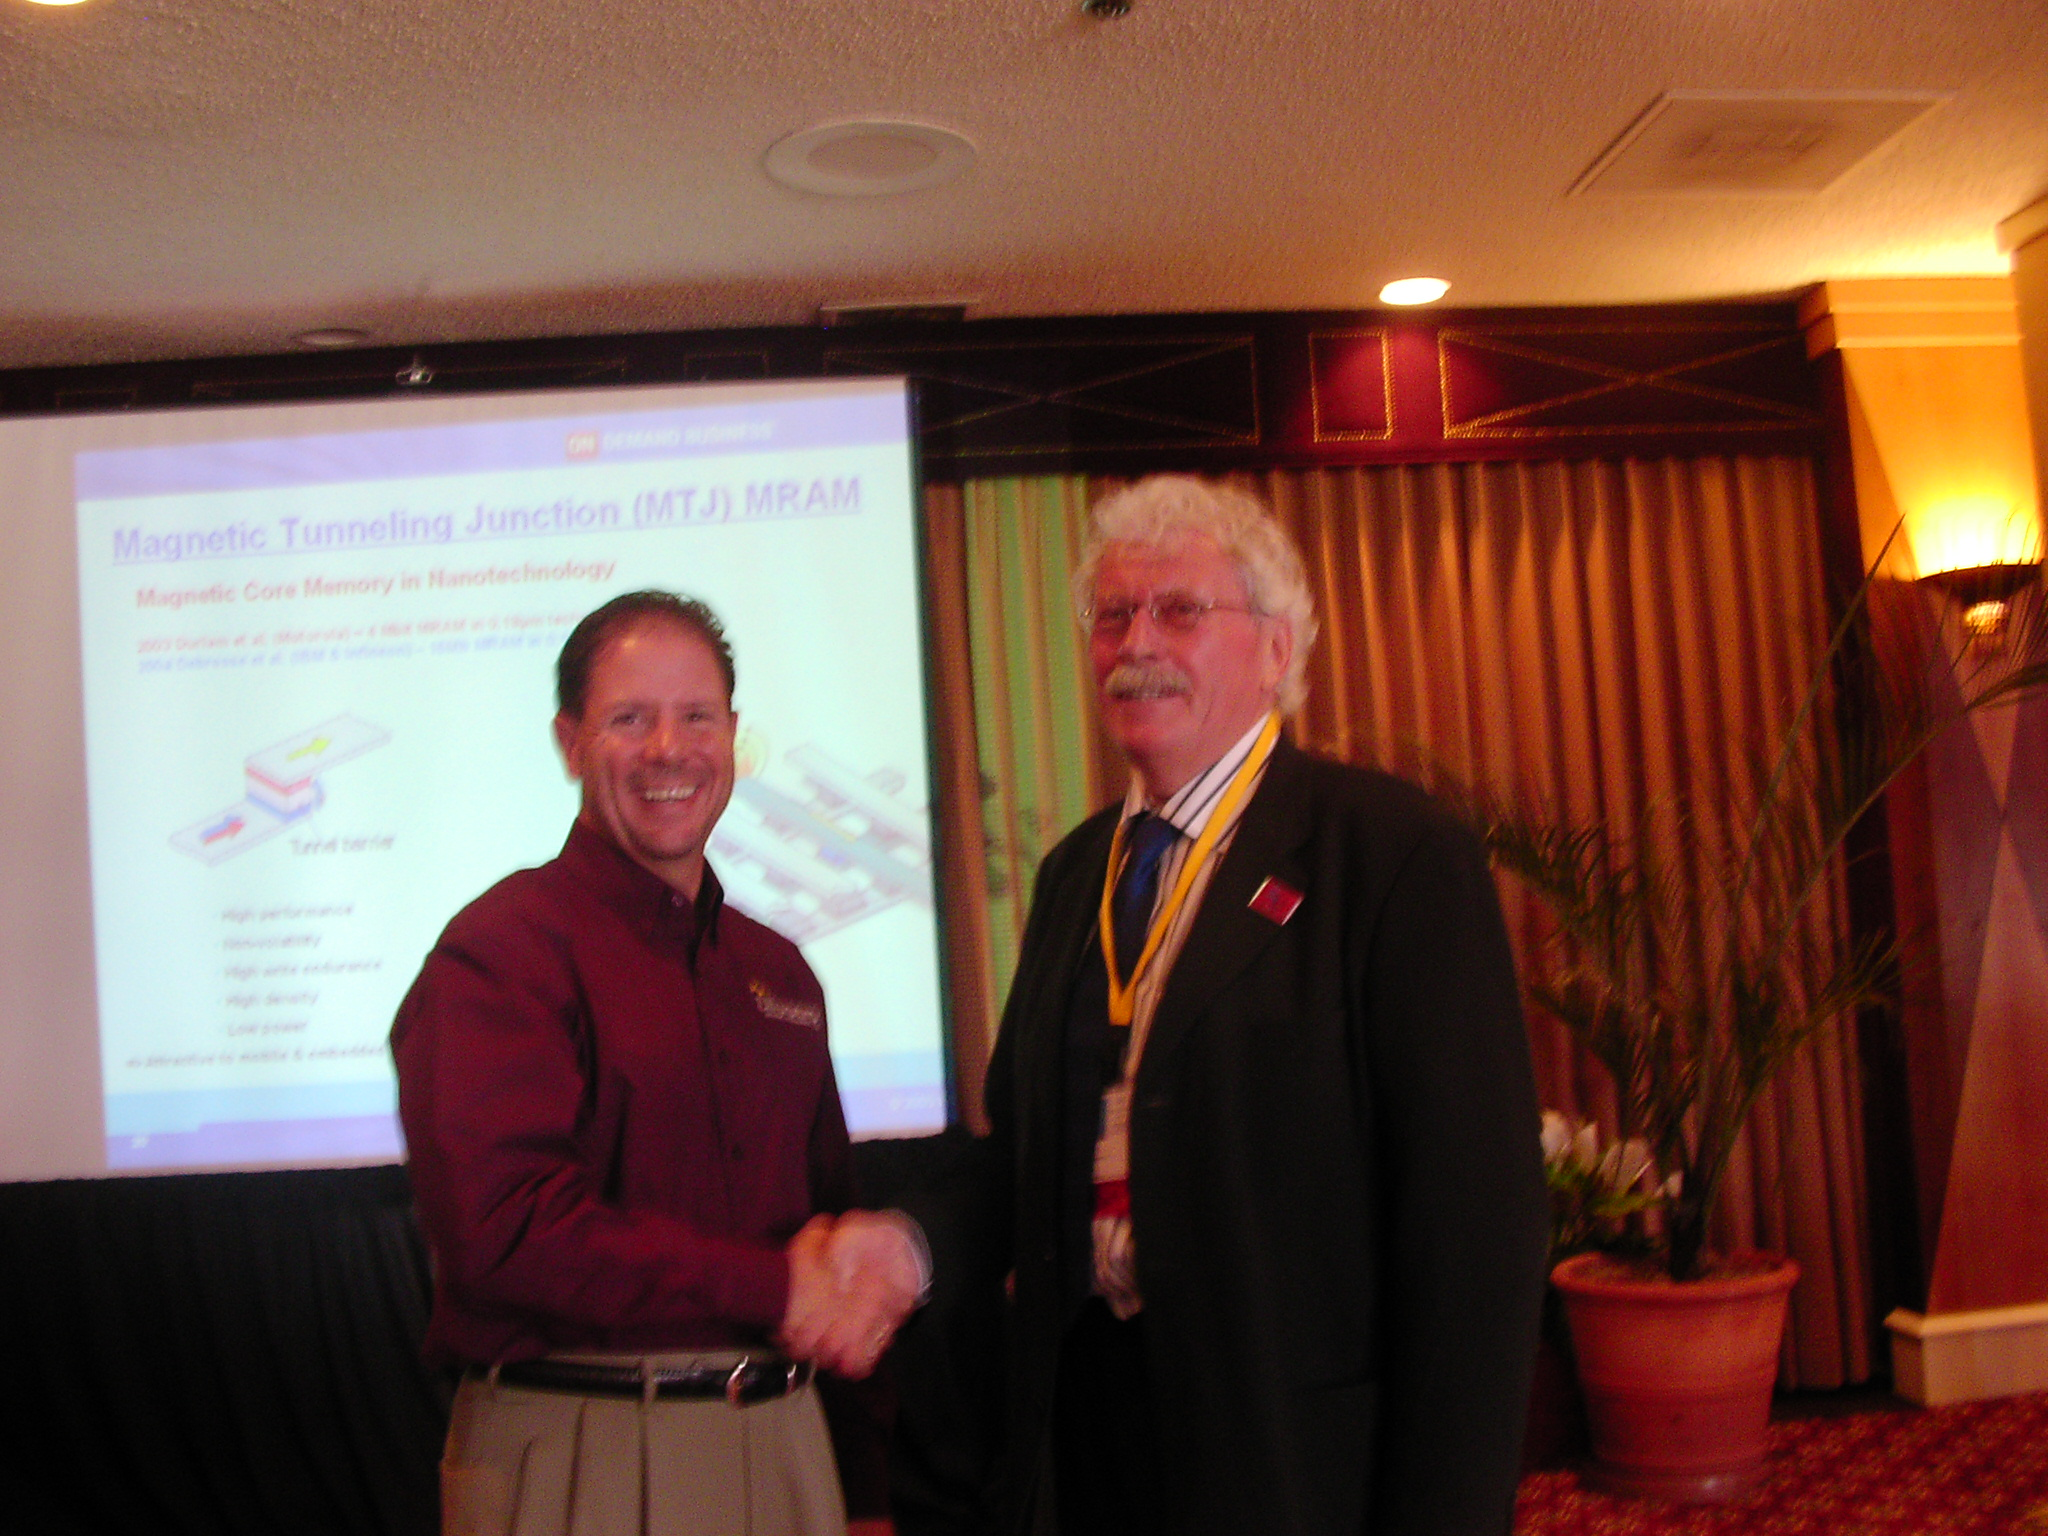 Eric Vaughan and Dr. Strassemeyer congratulate each other on a well-received session on the Future of the Mainframe.